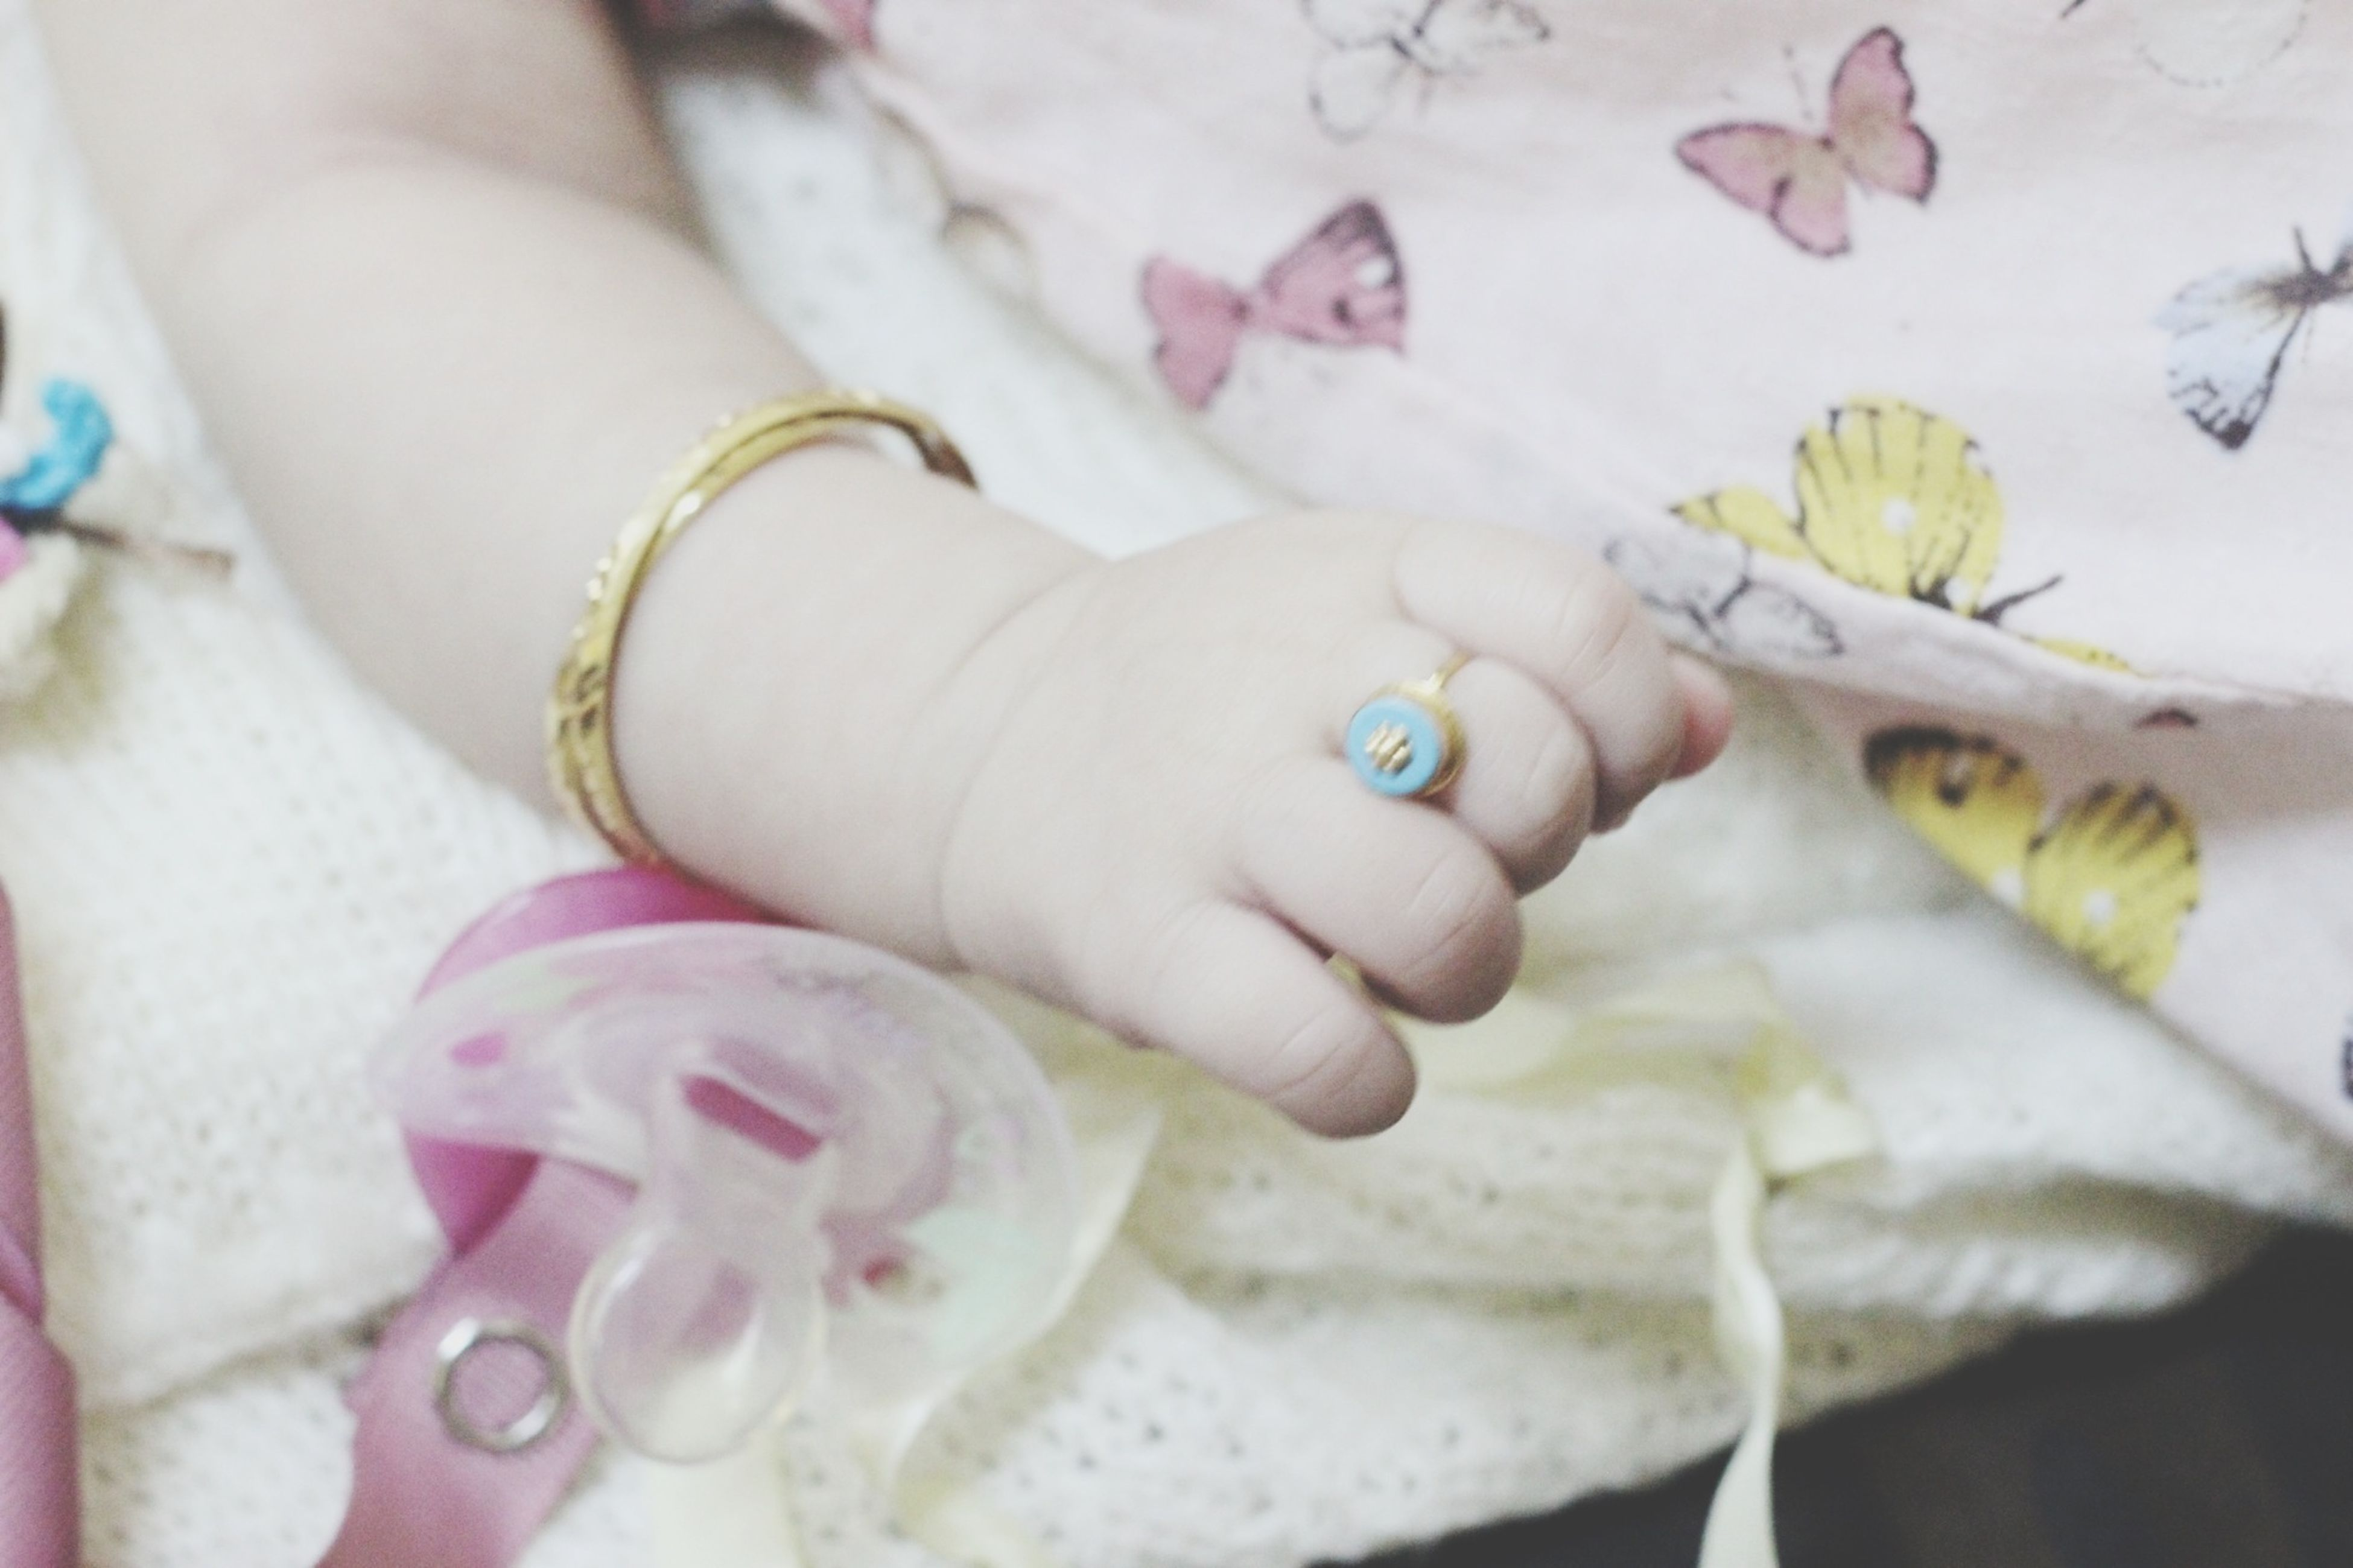 person, baby, childhood, indoors, unknown gender, lifestyles, fragility, babyhood, flower, holding, innocence, part of, close-up, leisure activity, petal